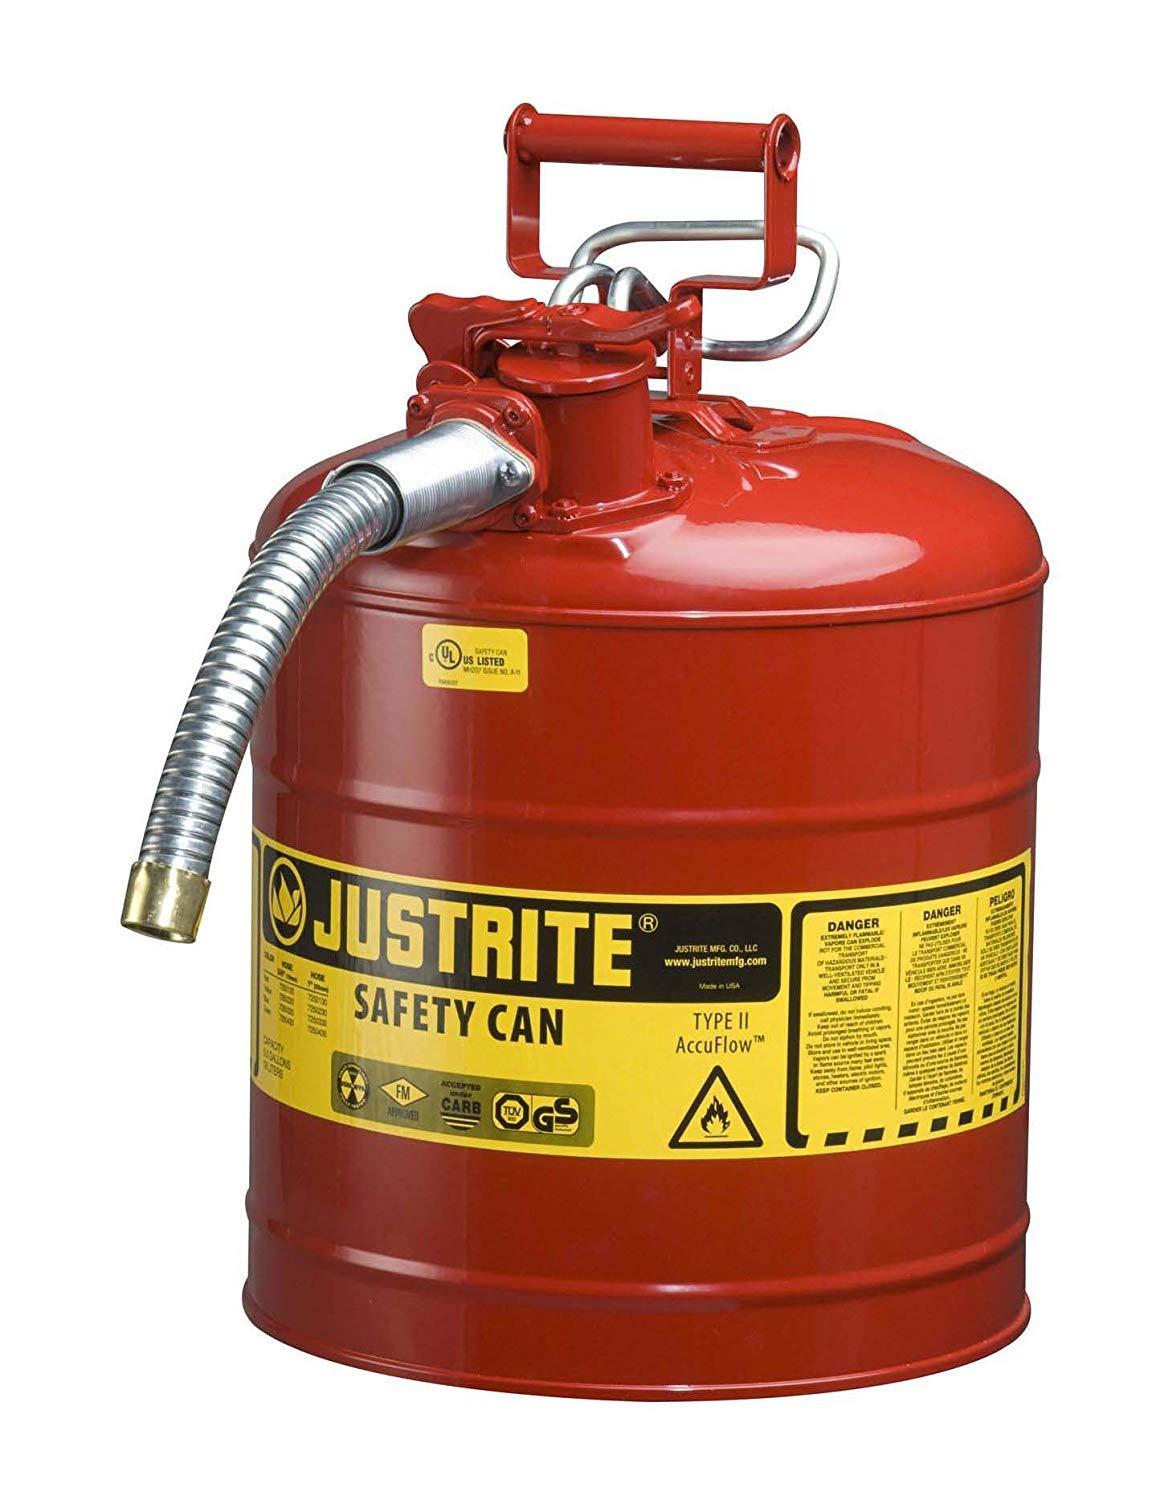 Justrite 7250130 Galvanized Steel, AccuFlow Type II Red Safety Can 1'' Flexible Spout, Large ID Zone, Meets OSHA & NFPA Handling Hazardous Liquids. 5 Gallon (19L) Size - 2 Pack